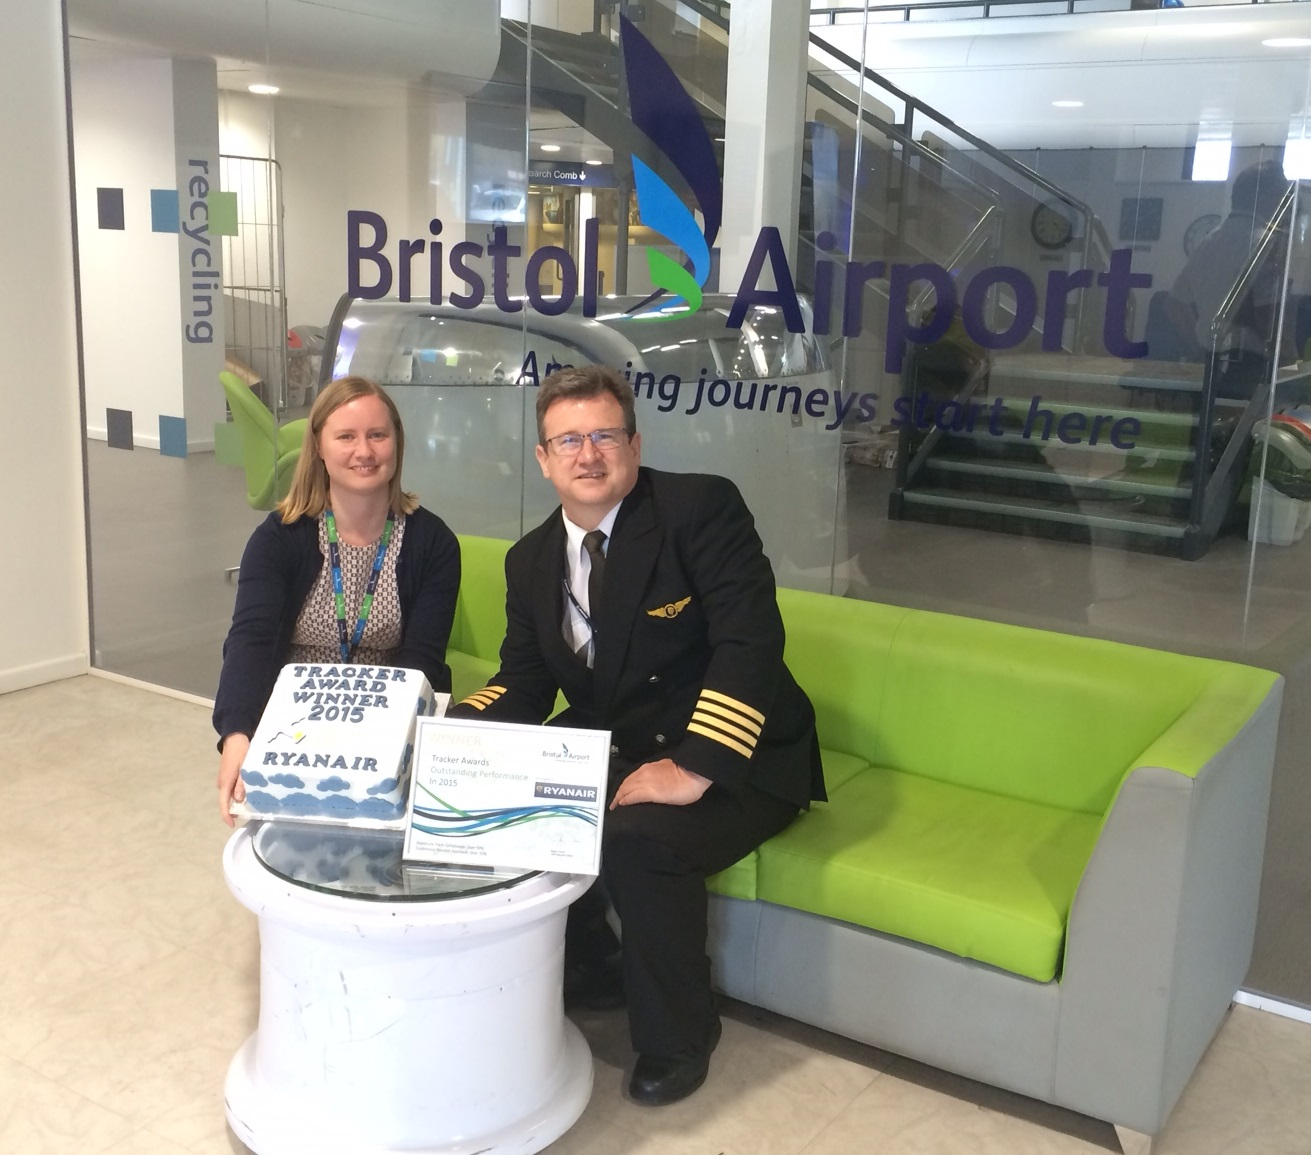 Ryanair lands Bristol Airport award for minimising its aircraft noise